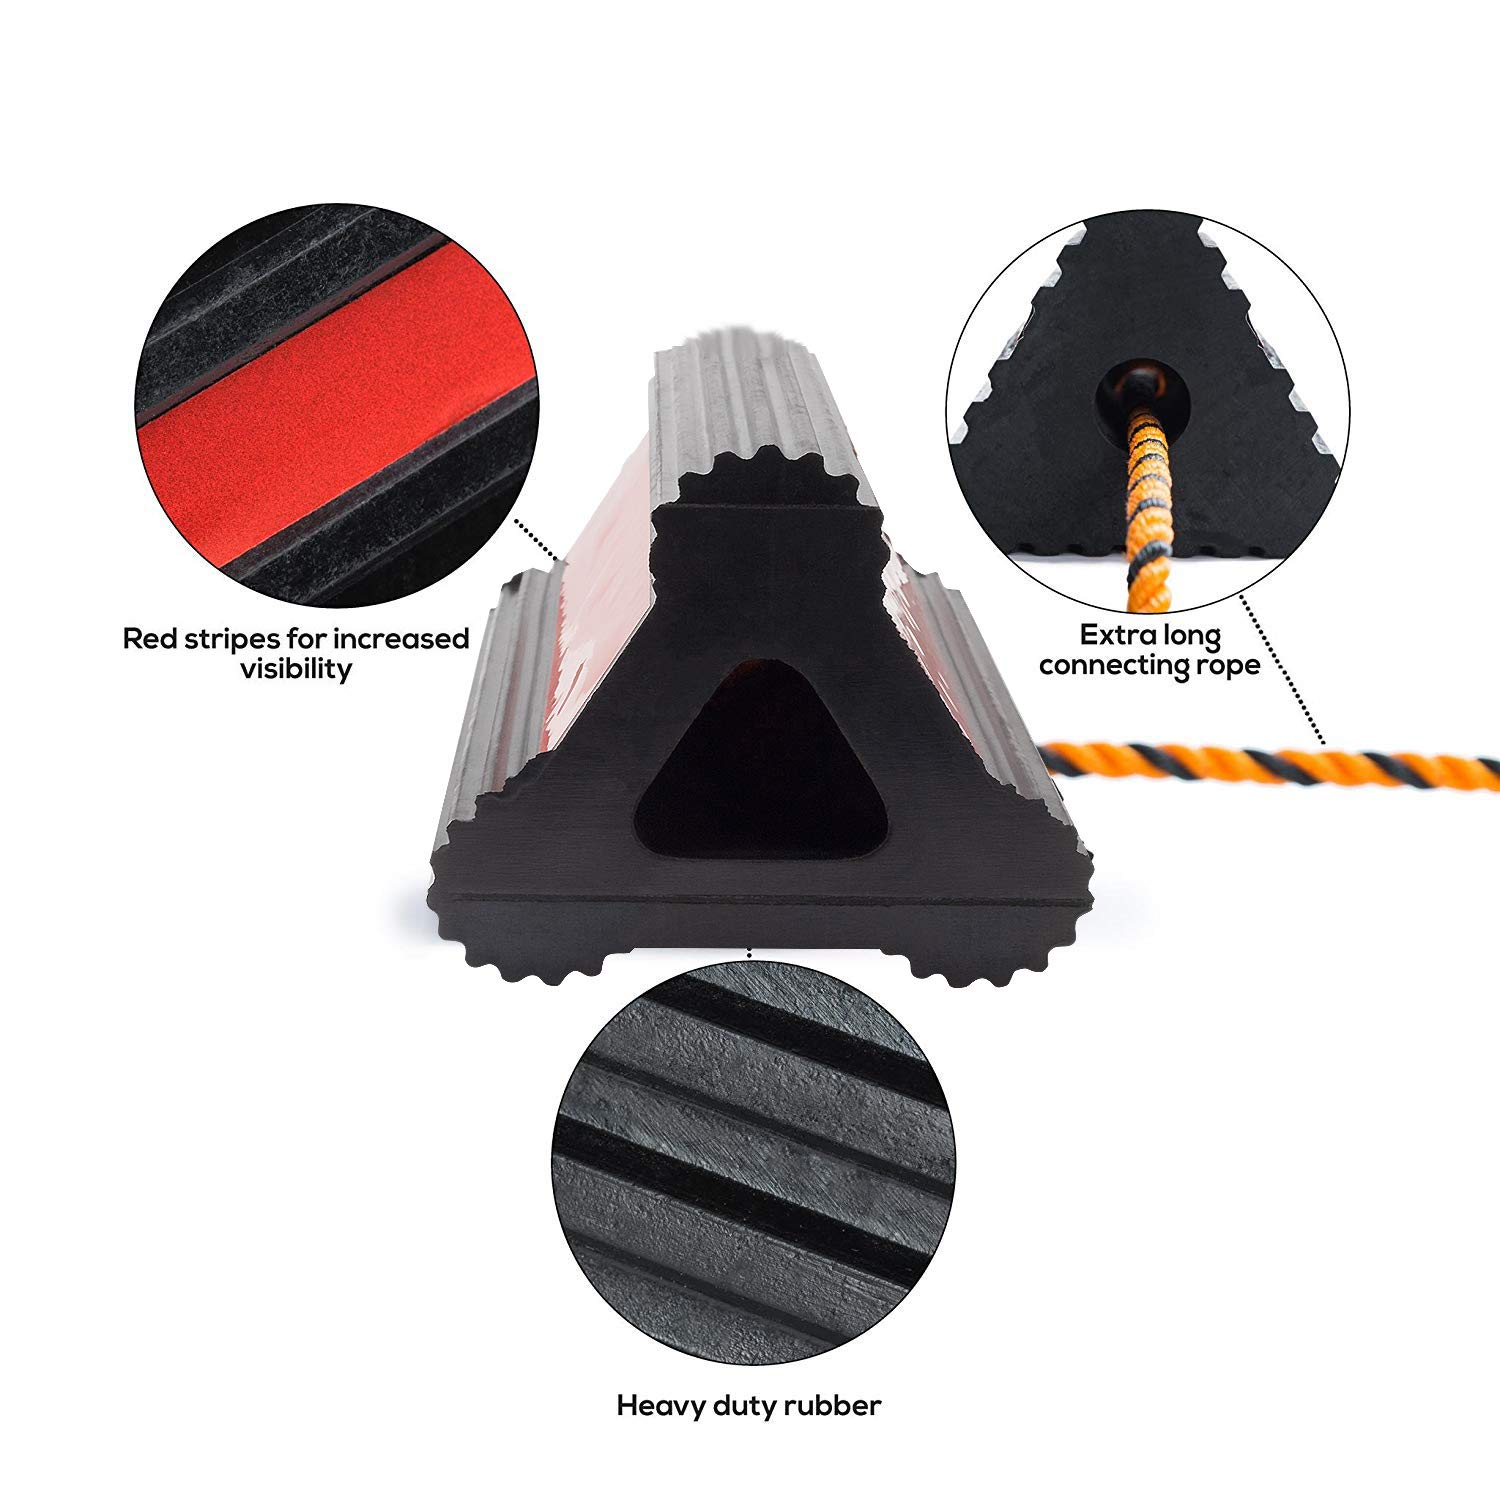 Valup Wheel Chocks - Car and RV Rubber Block - Long Connecting Rope - Heavy Duty Car Wheel Stoppers Chock - Extremely Durable - for Cars, Boats, Trucks, Aircraft, RVs (1 Pair) by Valup (Image #3)